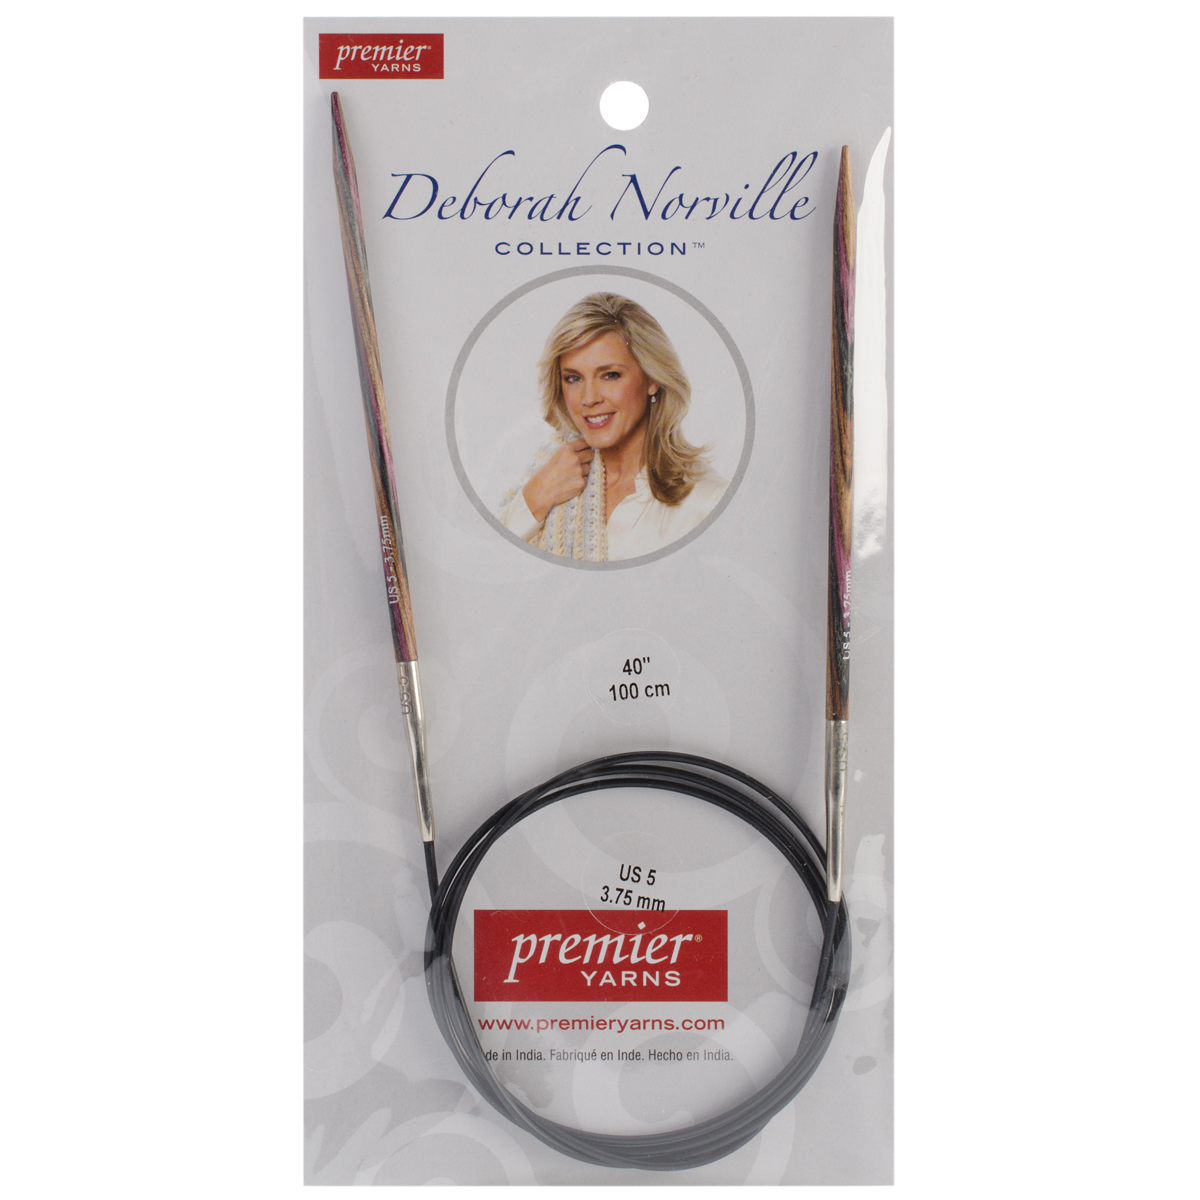 Deborah Norville Fixed Circular Needles 40\u0022 Size 5/3.75mm